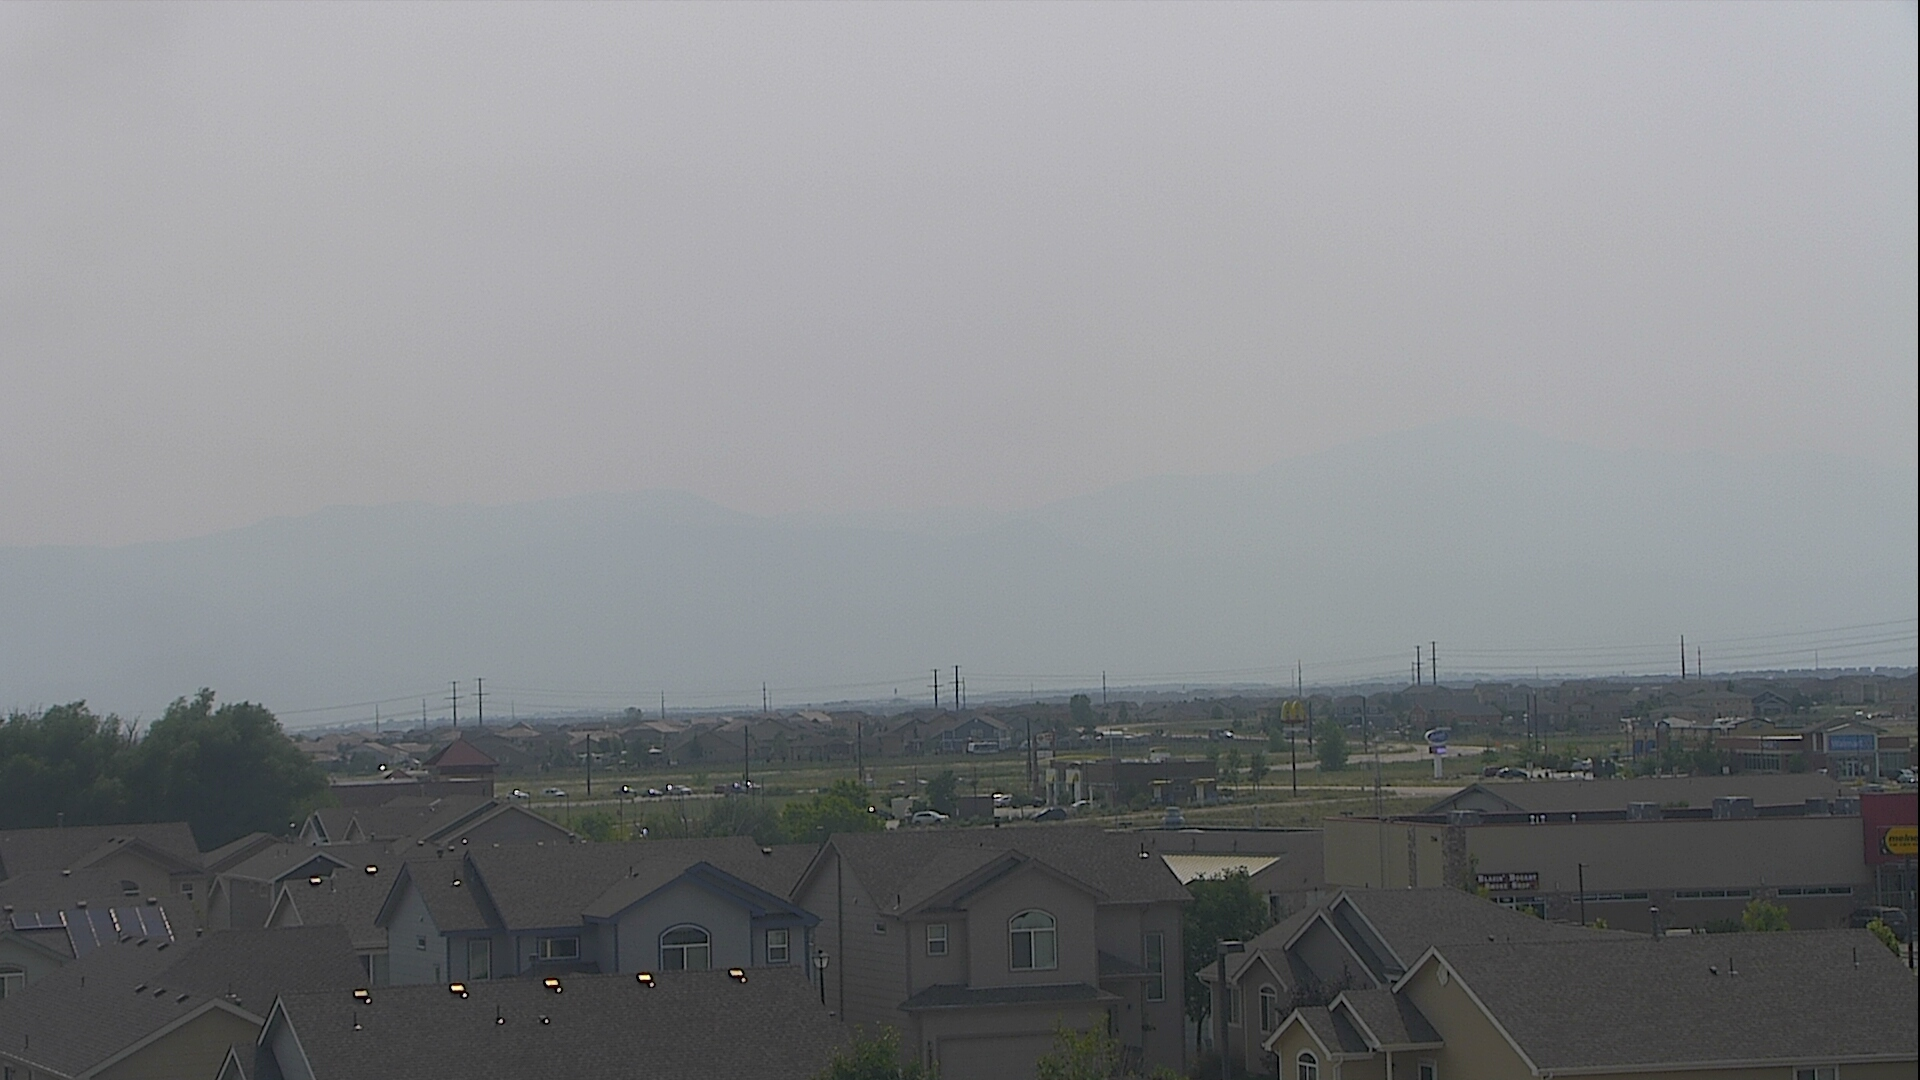 Current Image from Falcon Weather Cam - Fox21News